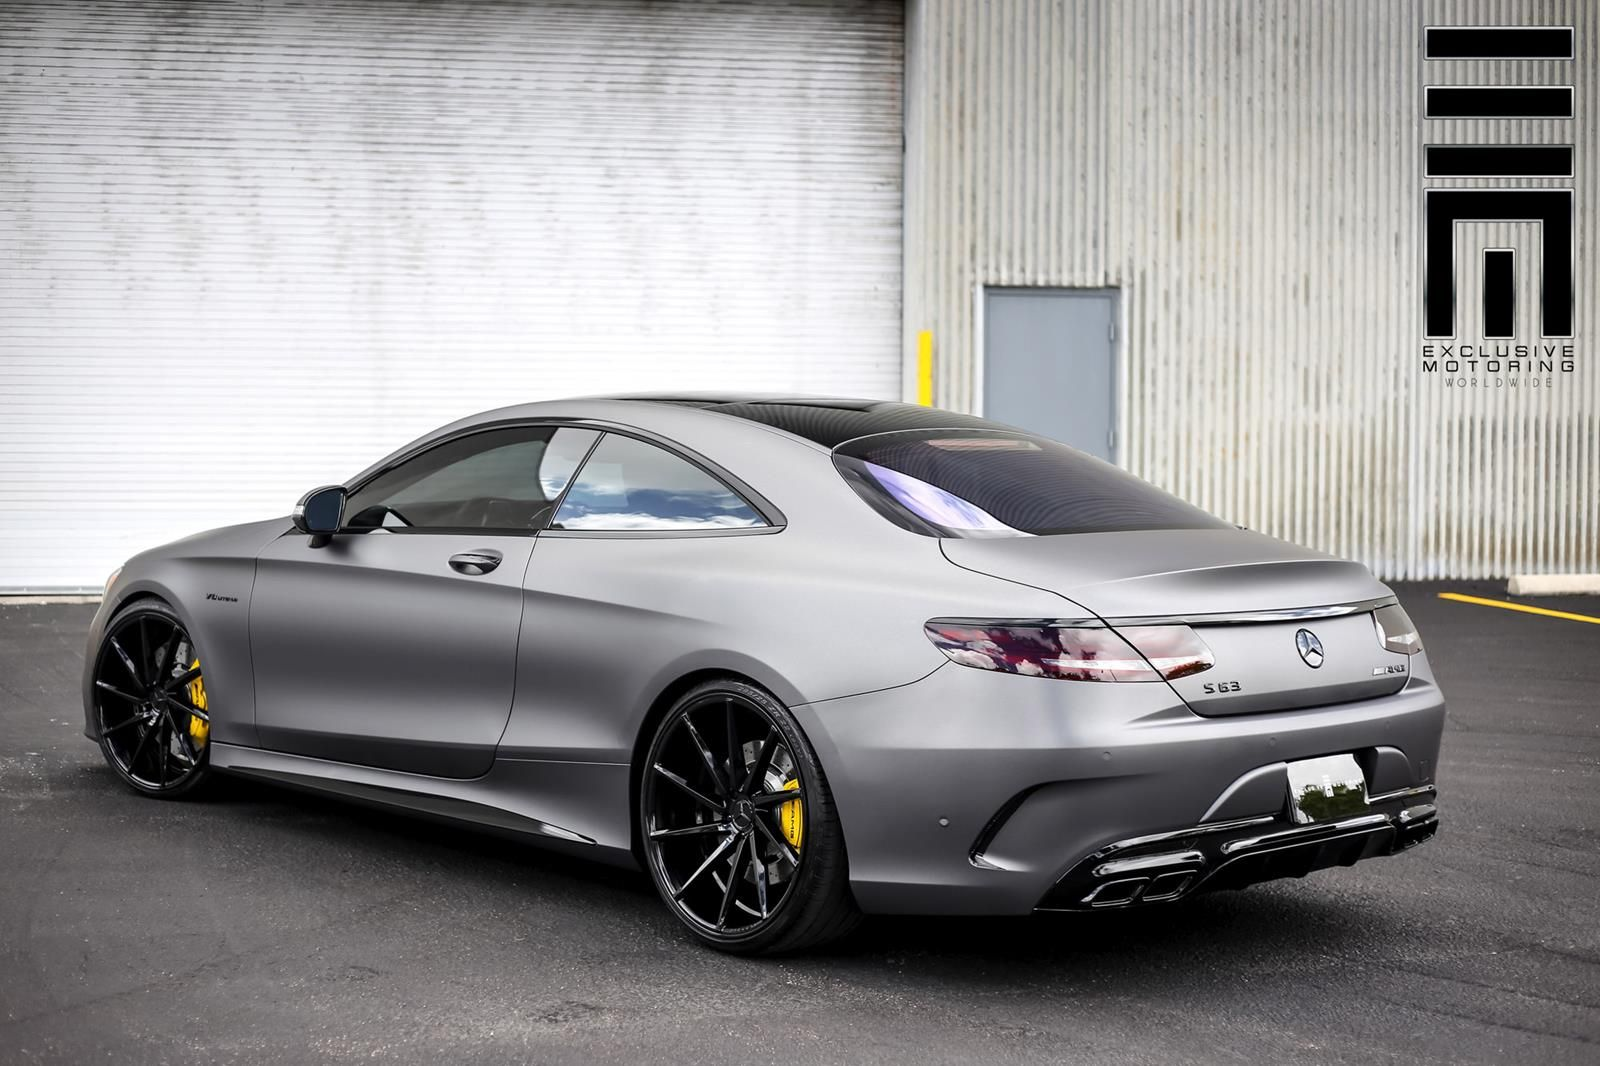 check out this uber beautiful mercedes s63 amg coupe kaufen. Black Bedroom Furniture Sets. Home Design Ideas